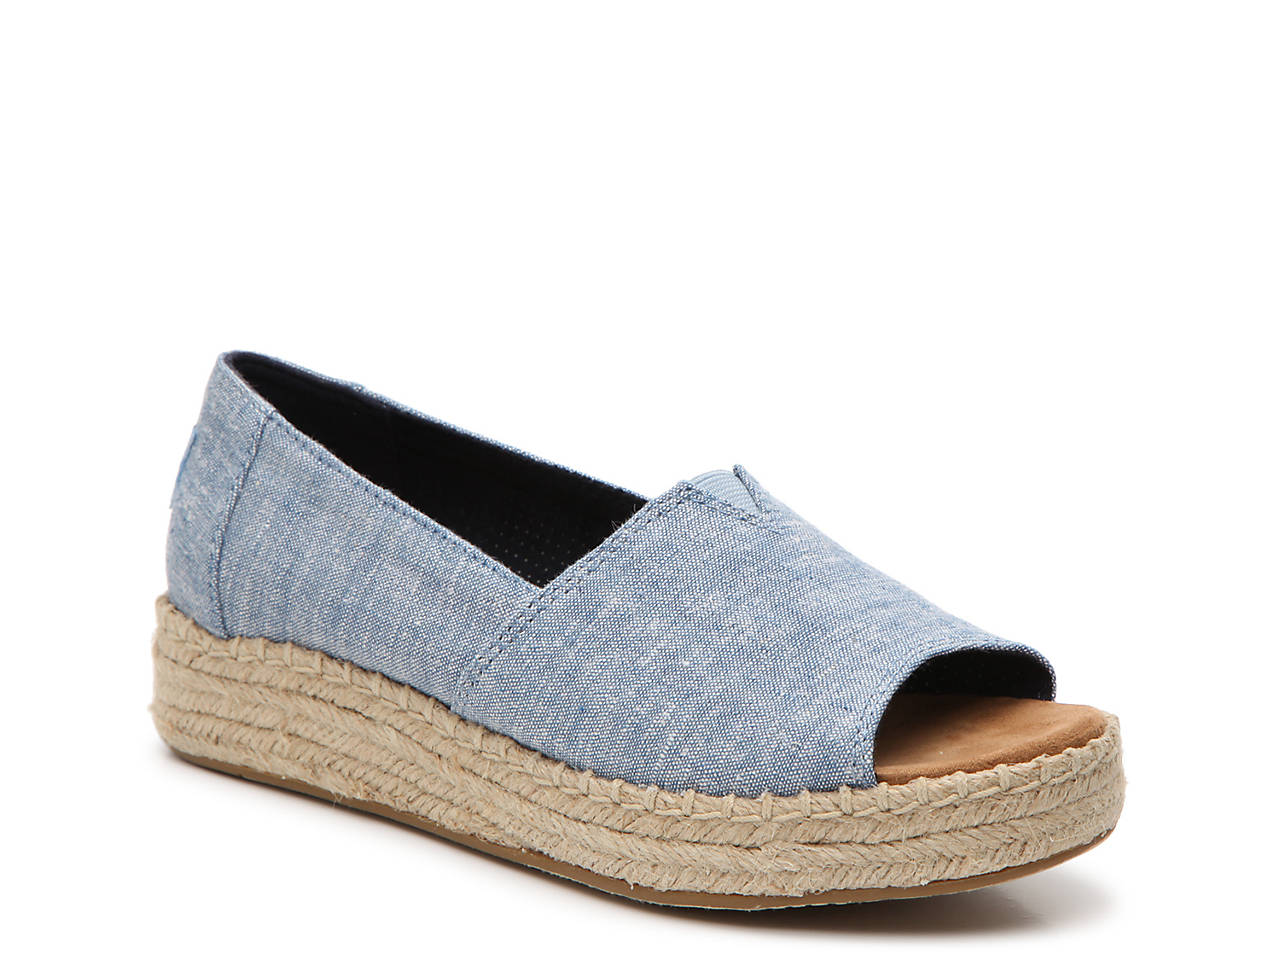 42c9d43e4ef TOMS Alpargata Espadrille Wedge Slip-On Women s Shoes